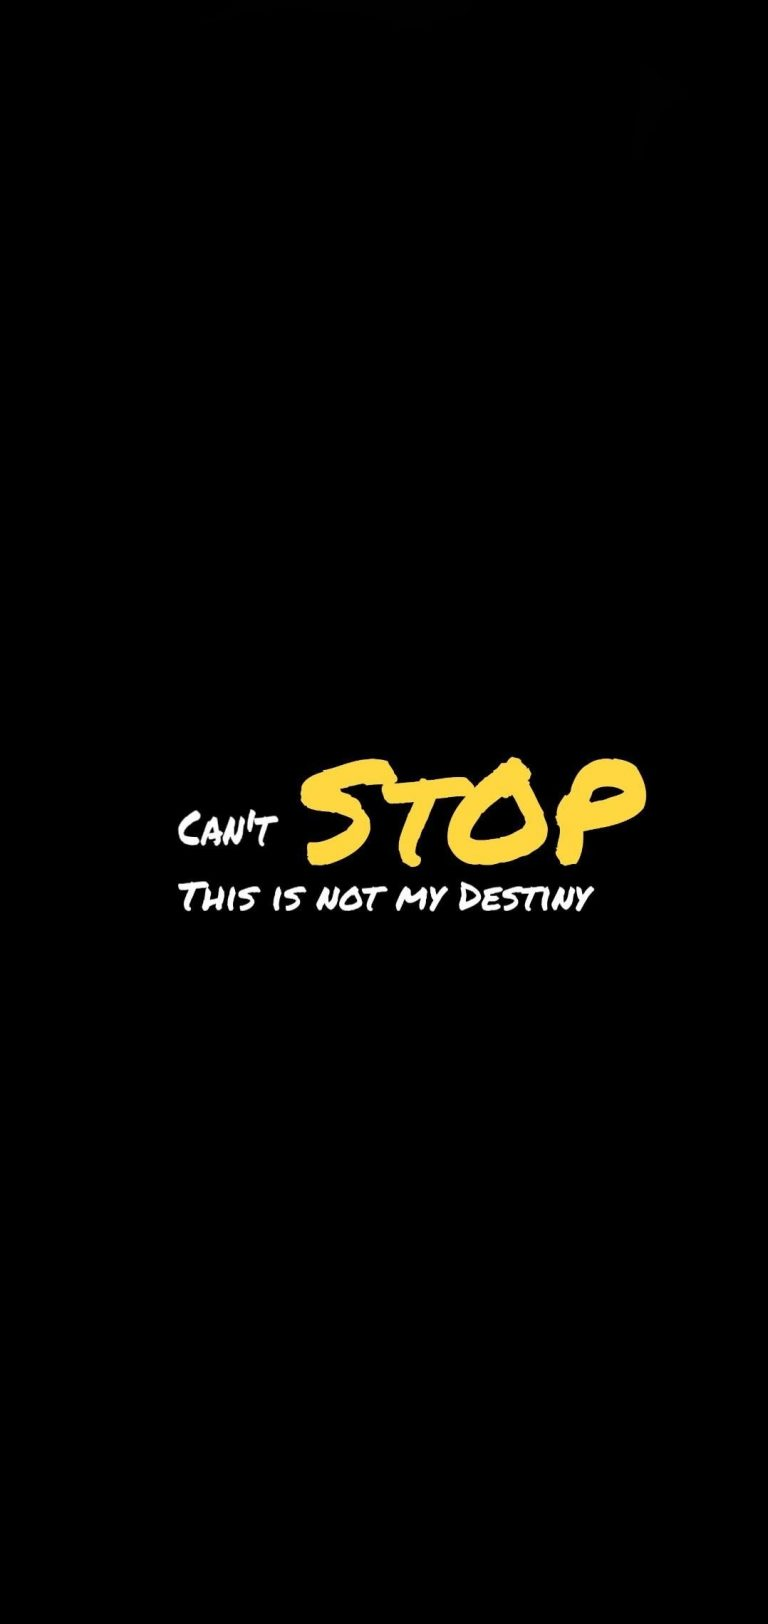 Can't Stop, This is not My Destiny Wallpaper